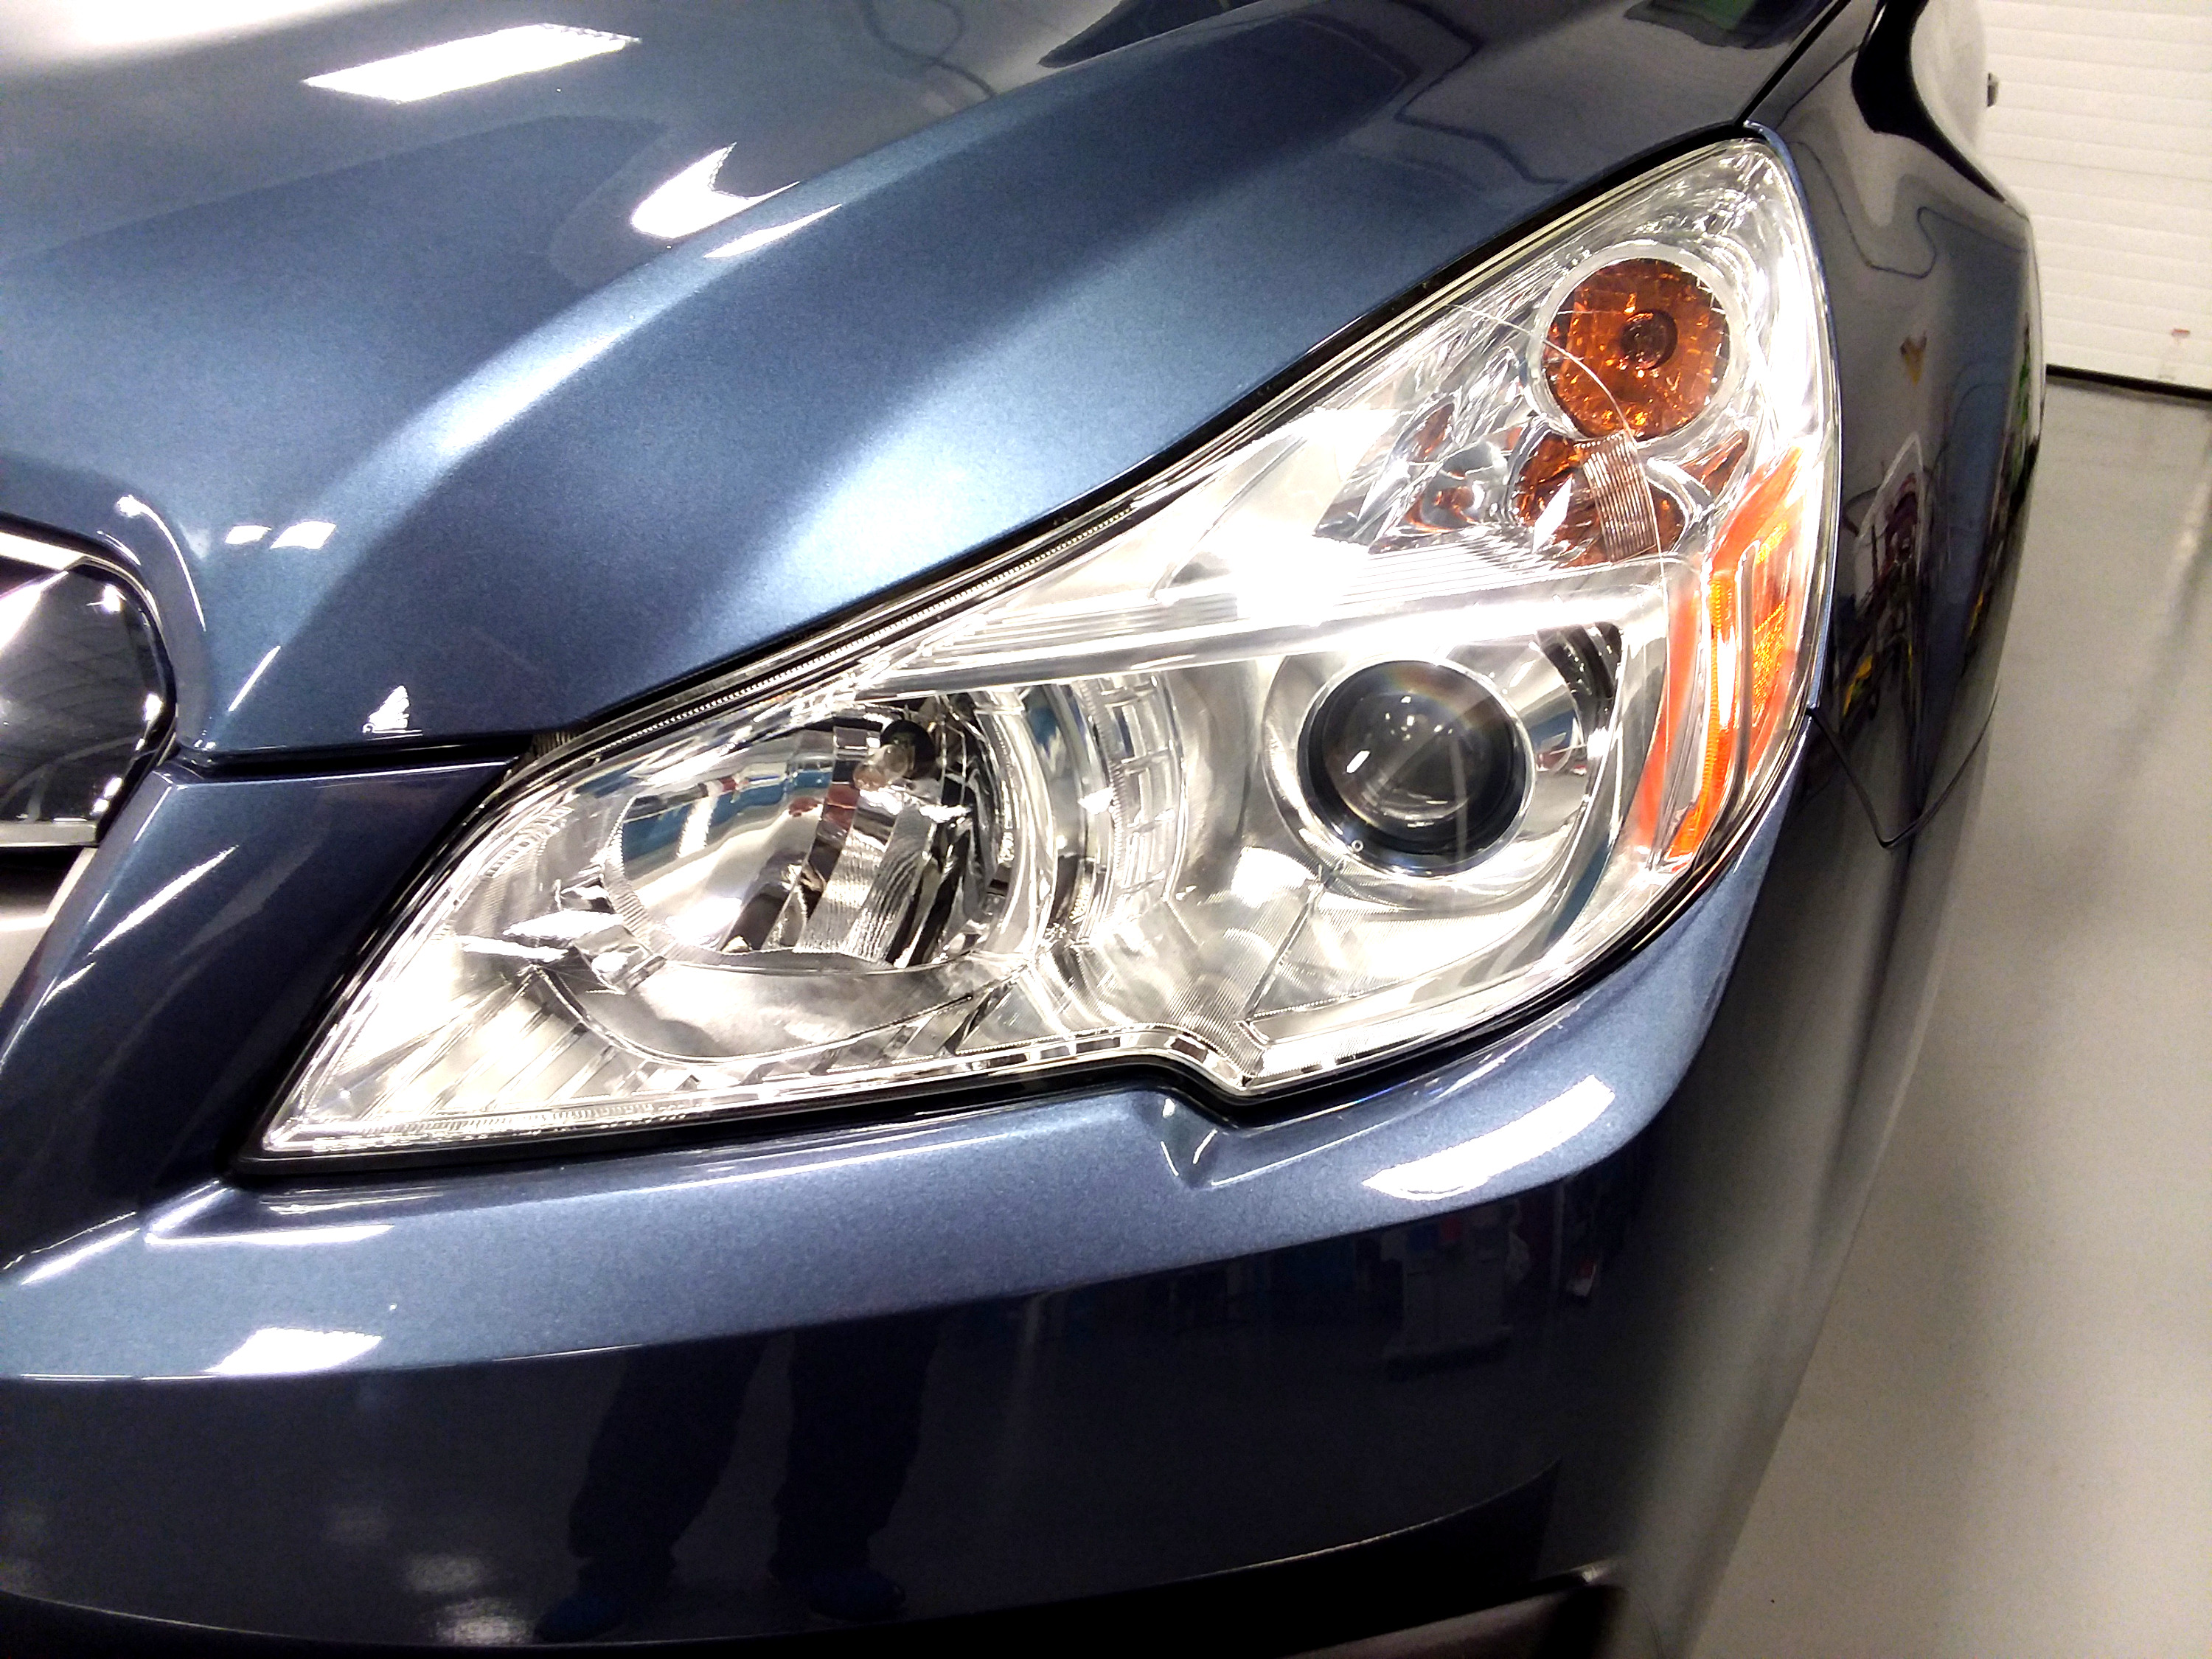 2013 Subaru Outback Headlights PPF